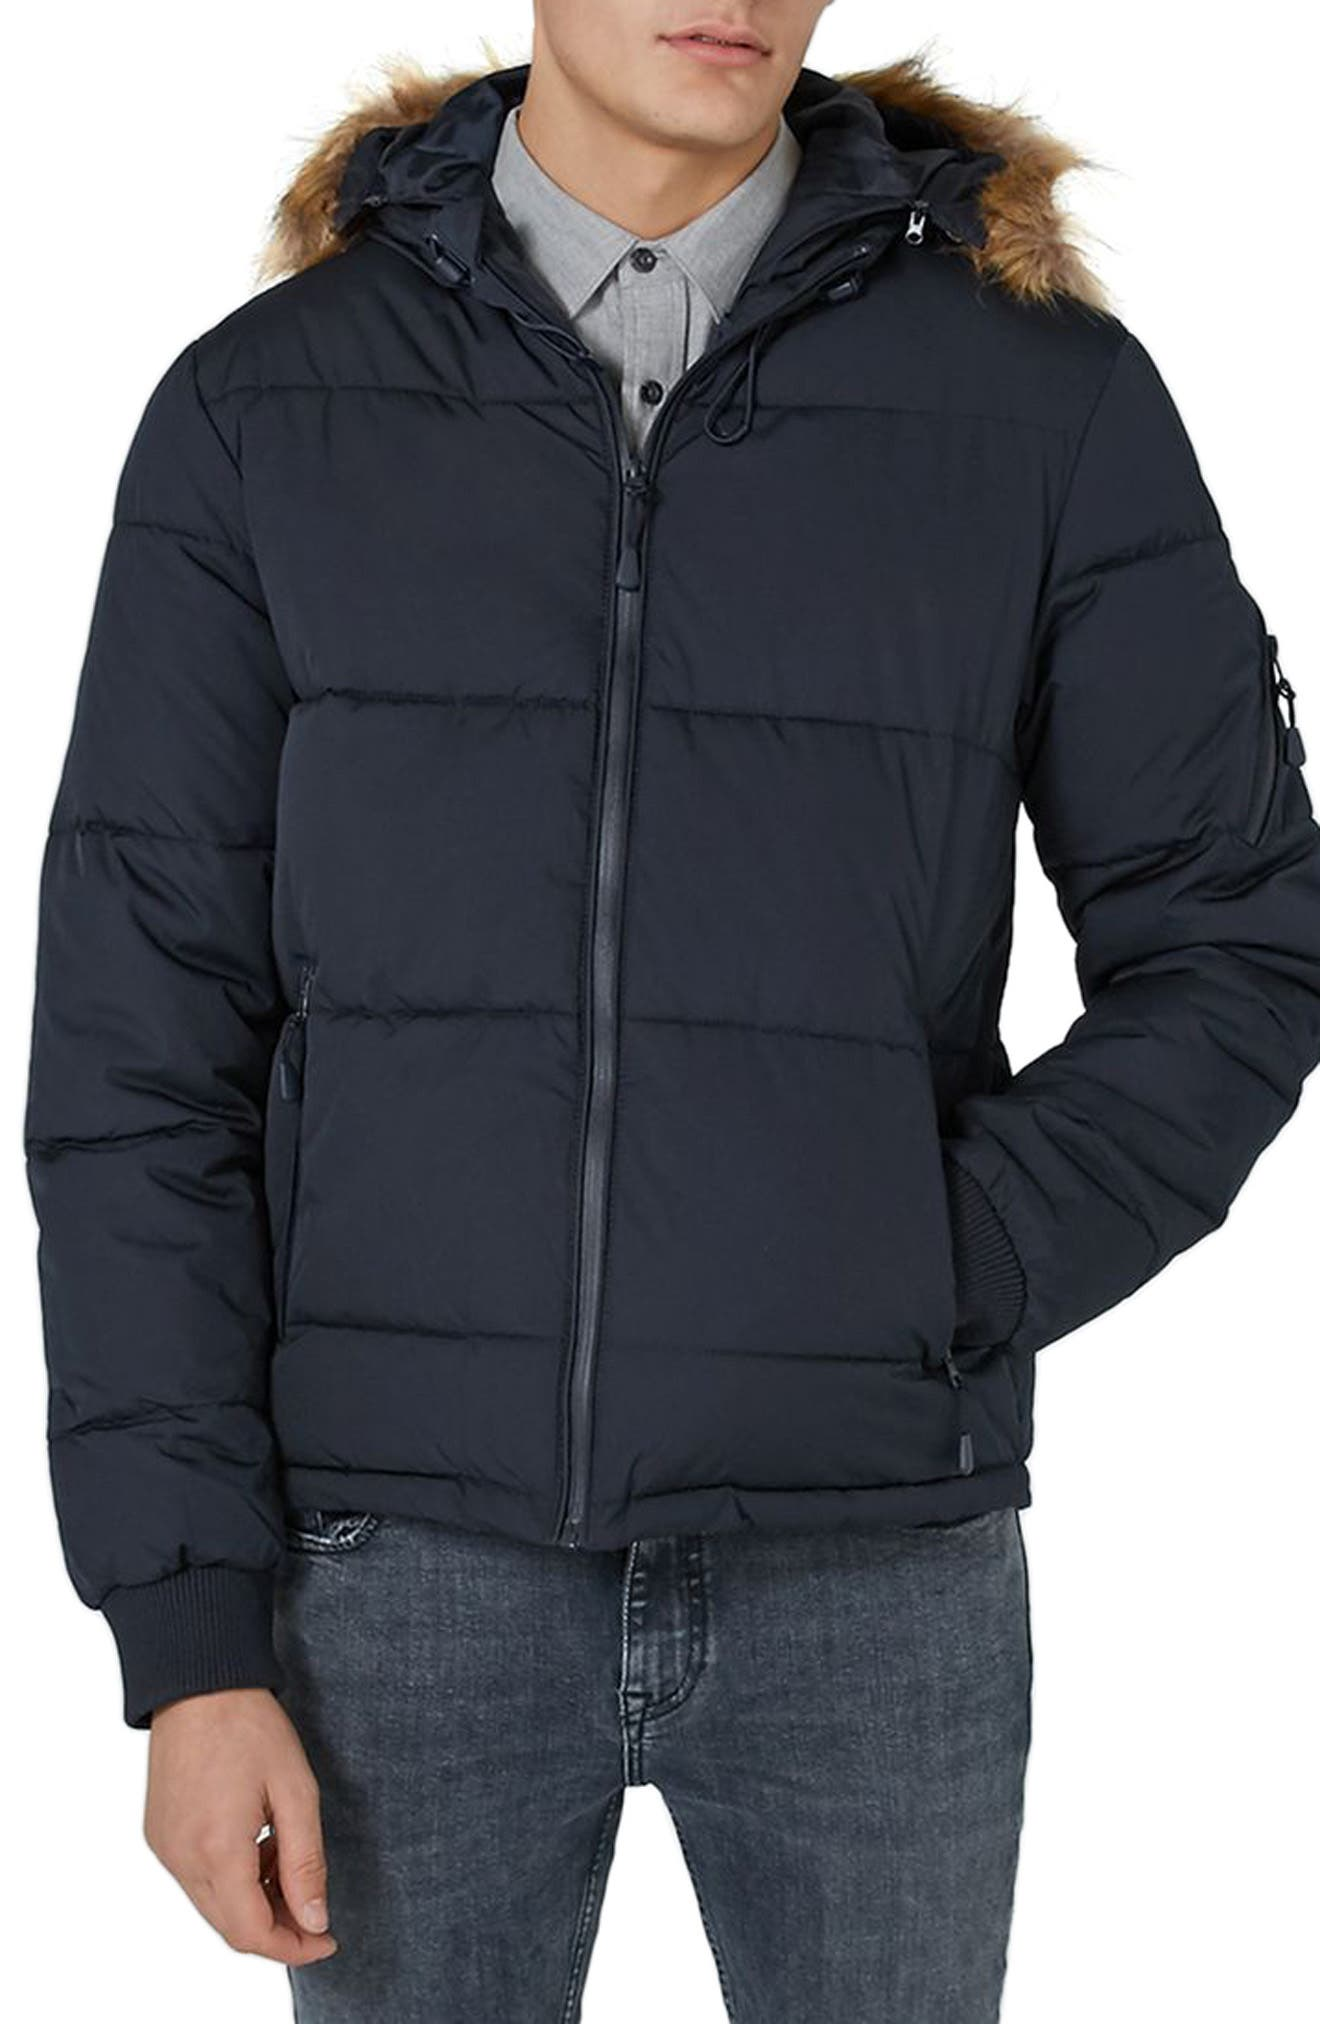 Maguire Hooded Puffer Coat with Faux Fur Trim,                             Main thumbnail 1, color,                             Navy Blue